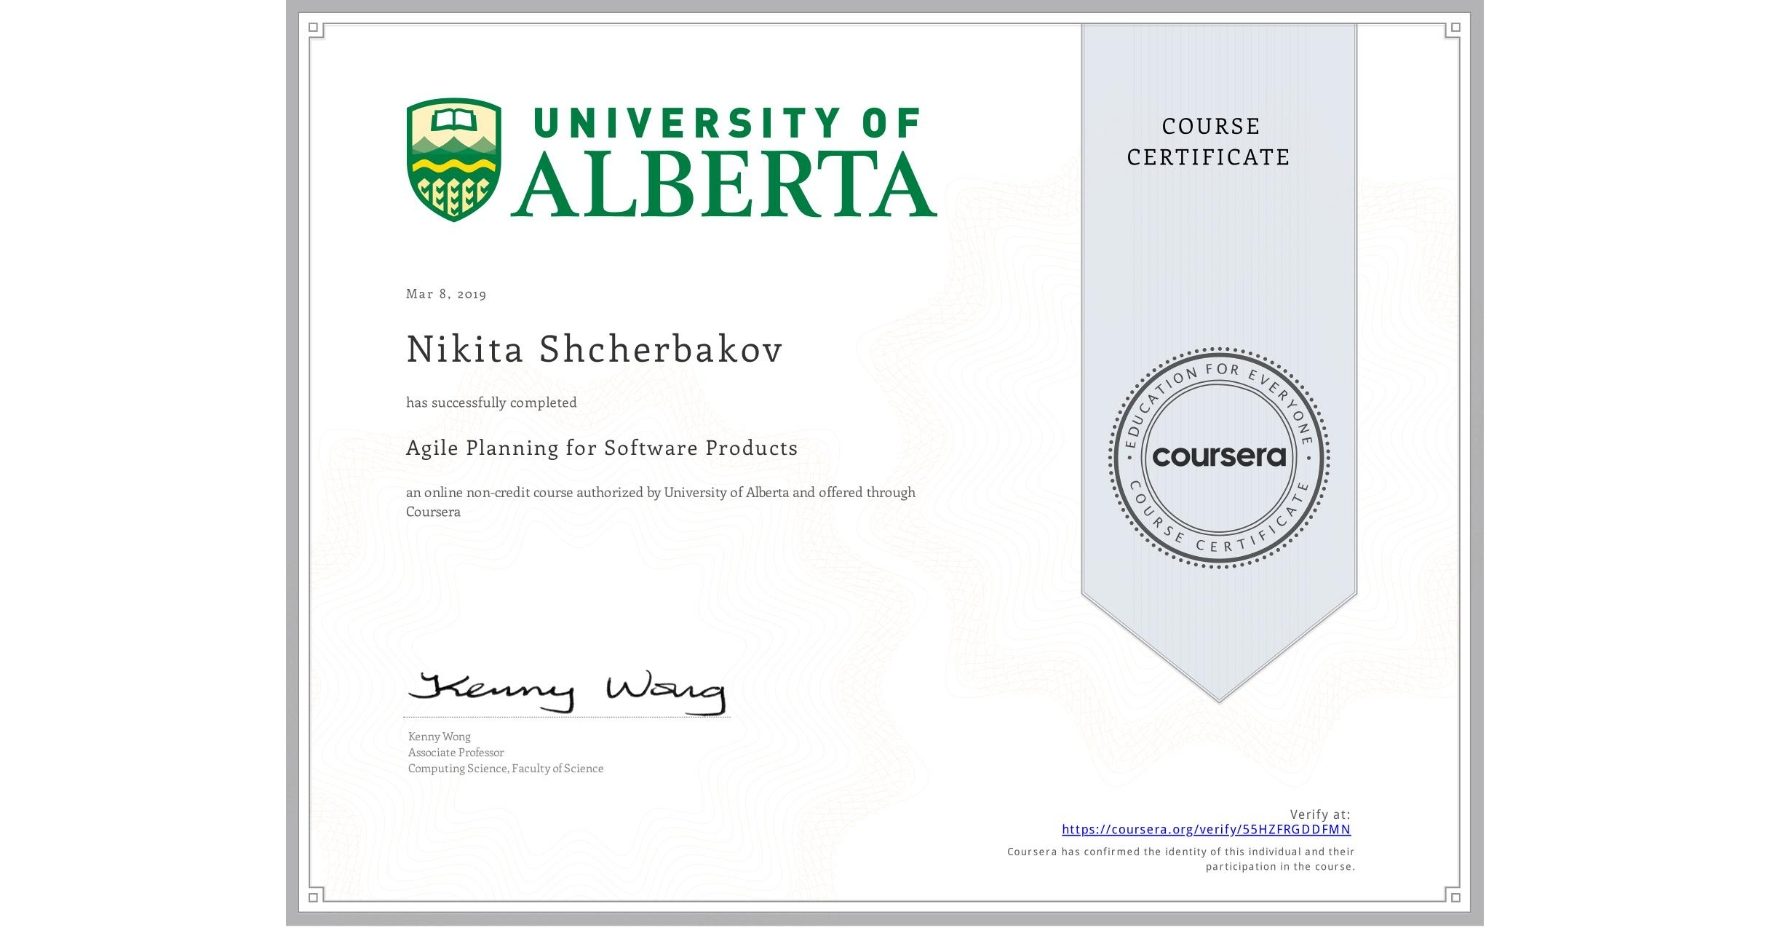 View certificate for Nikita Shcherbakov, Agile Planning for Software Products, an online non-credit course authorized by University of Alberta and offered through Coursera